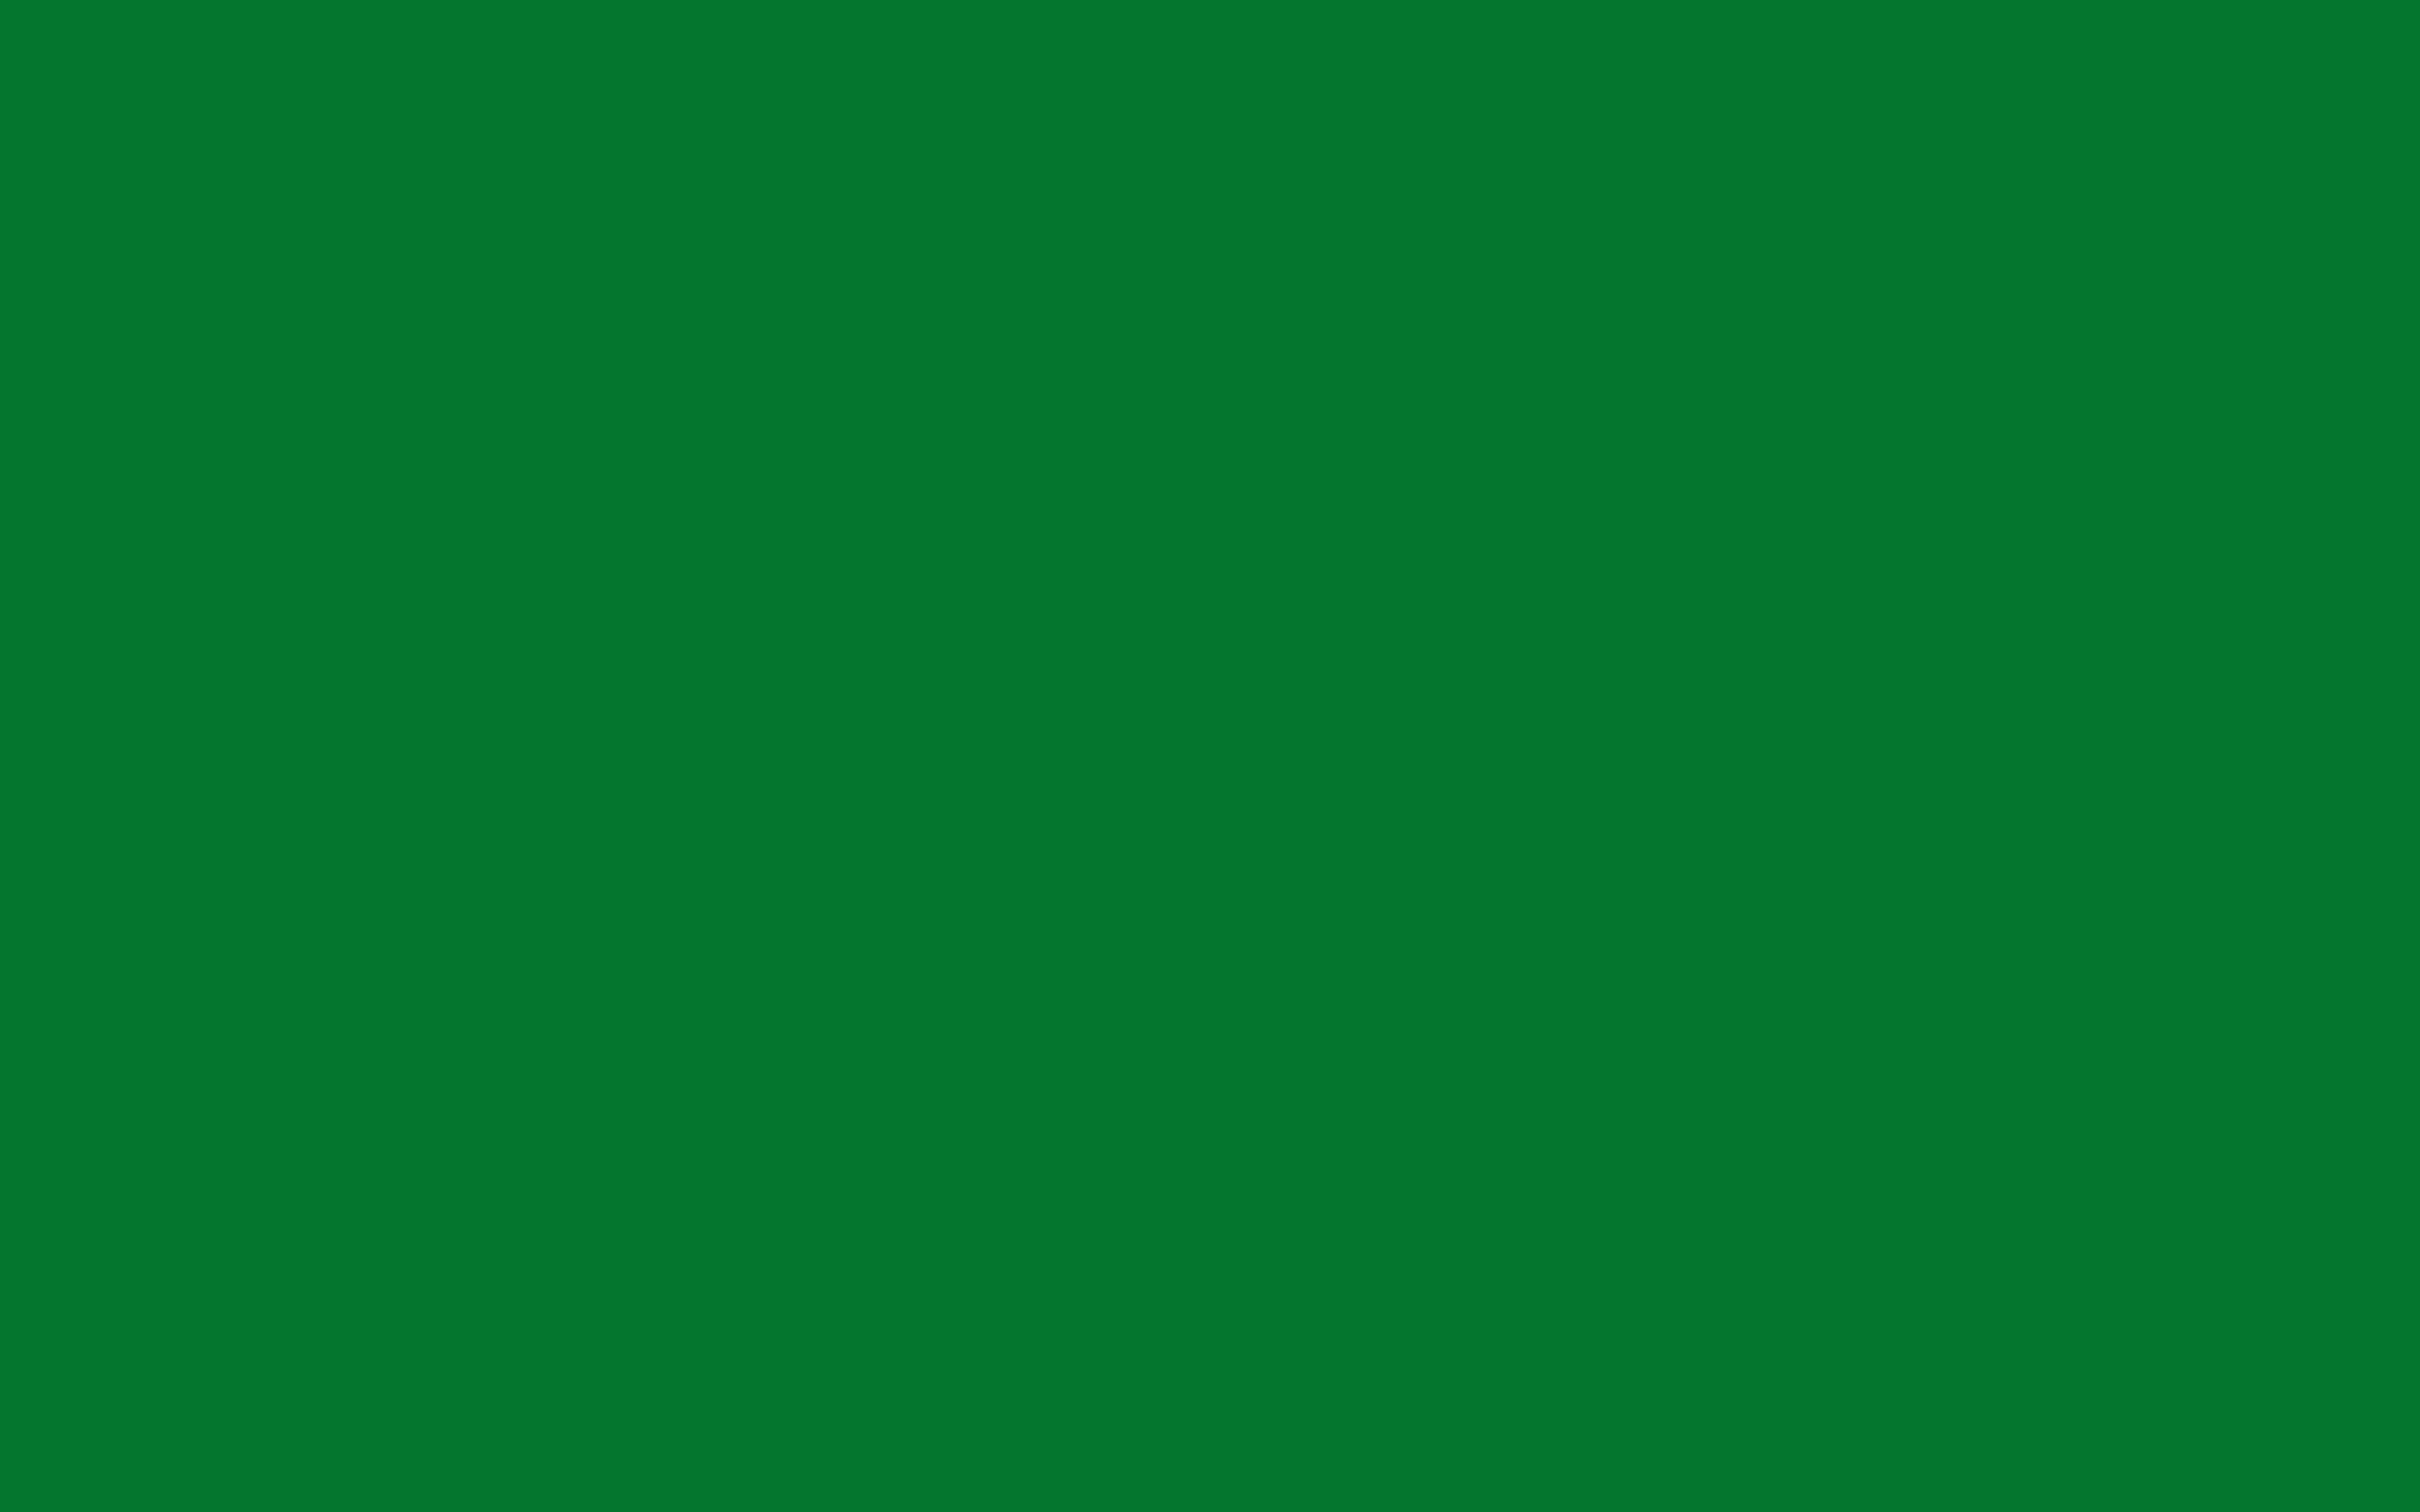 2880x1800 - Solid Green 19